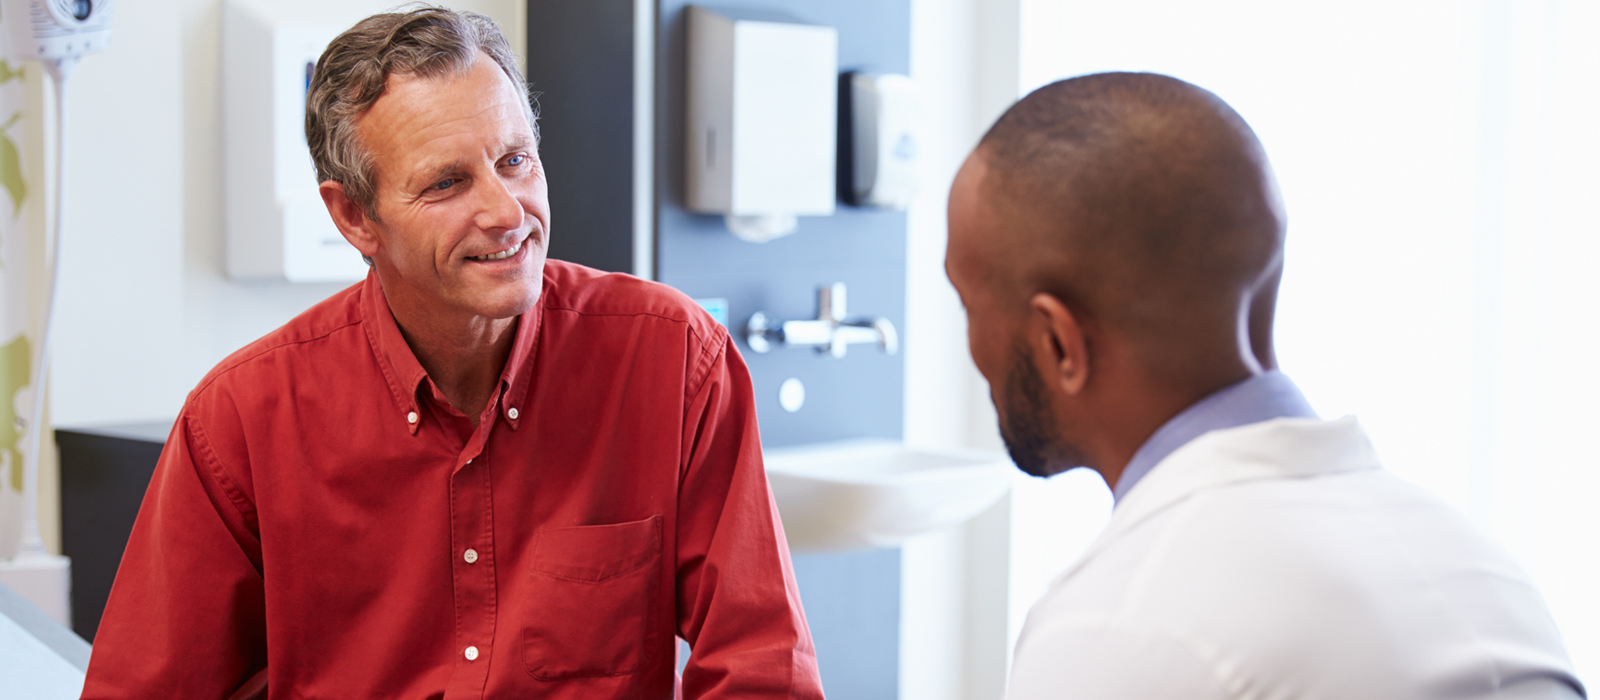 Spirometry testing and Management referral services - consultant talking to patient